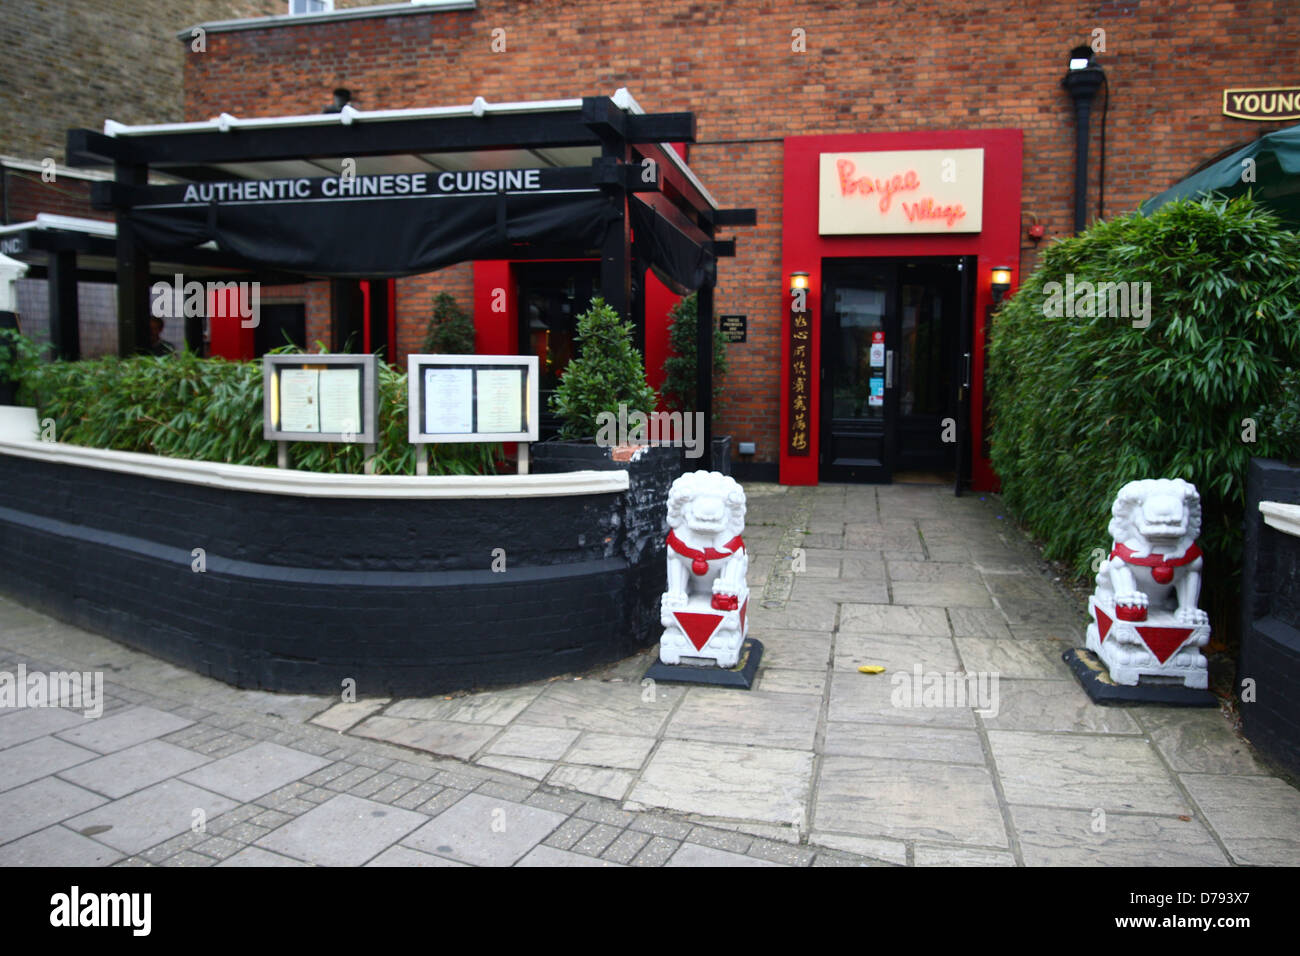 The Bayee Village Restaurant In Wimbledon Where Hugh Grant Met The Stock Photo Alamy